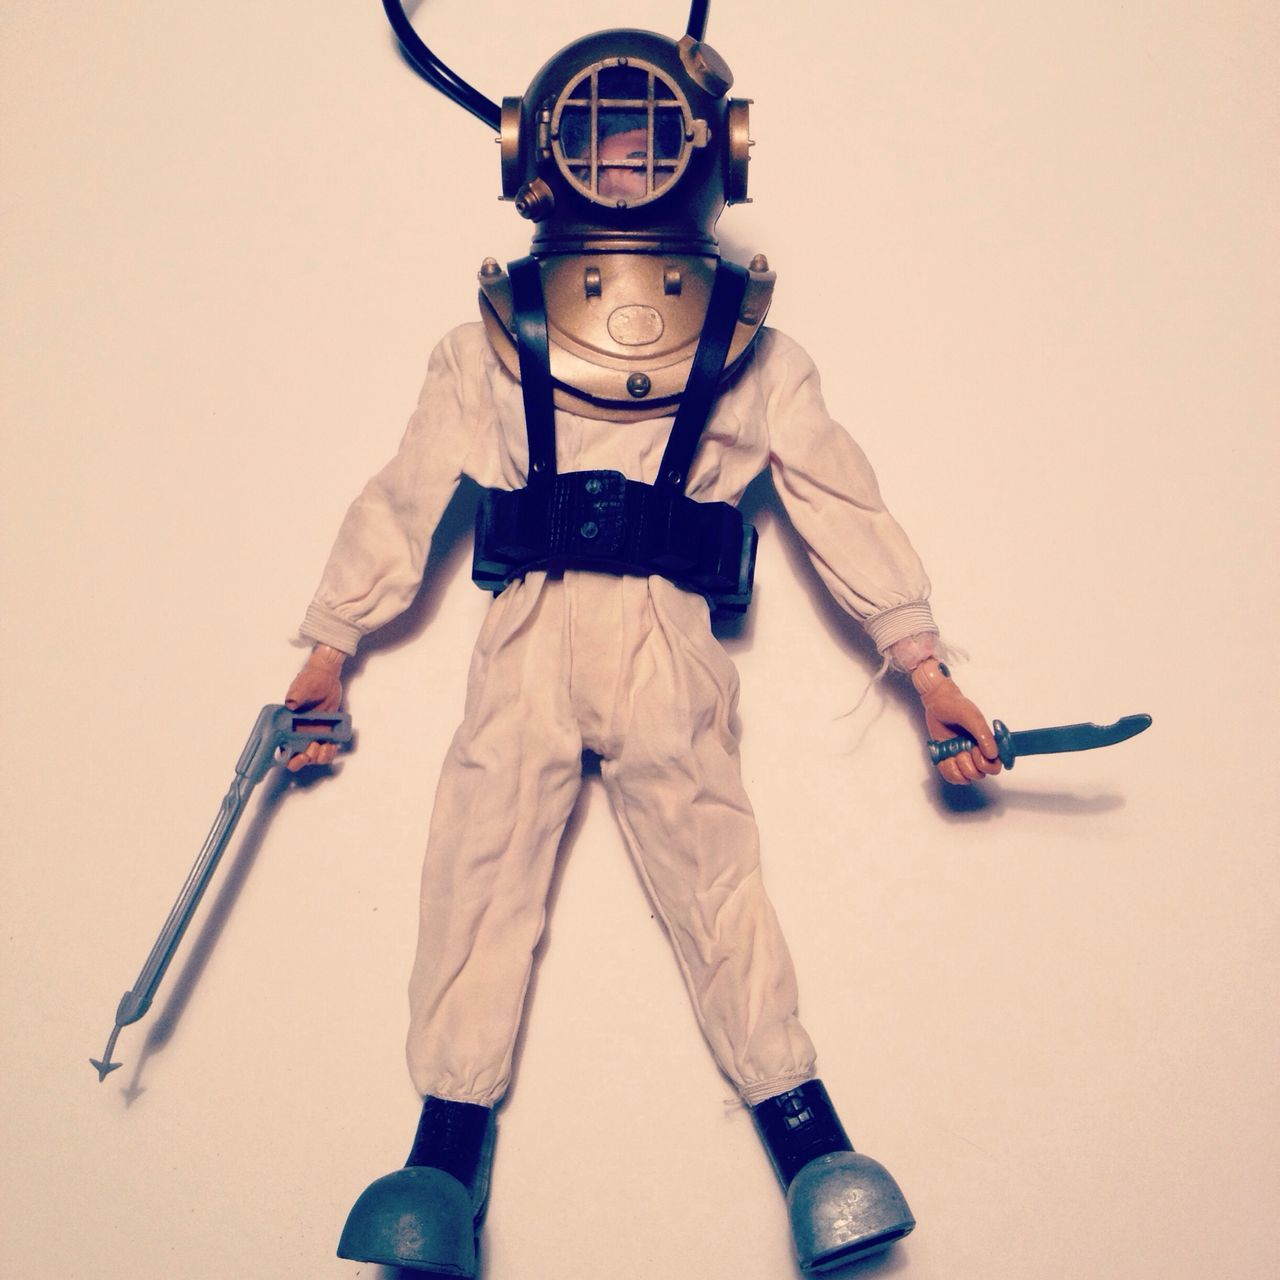 Toy man wearing retro diving suit over white background